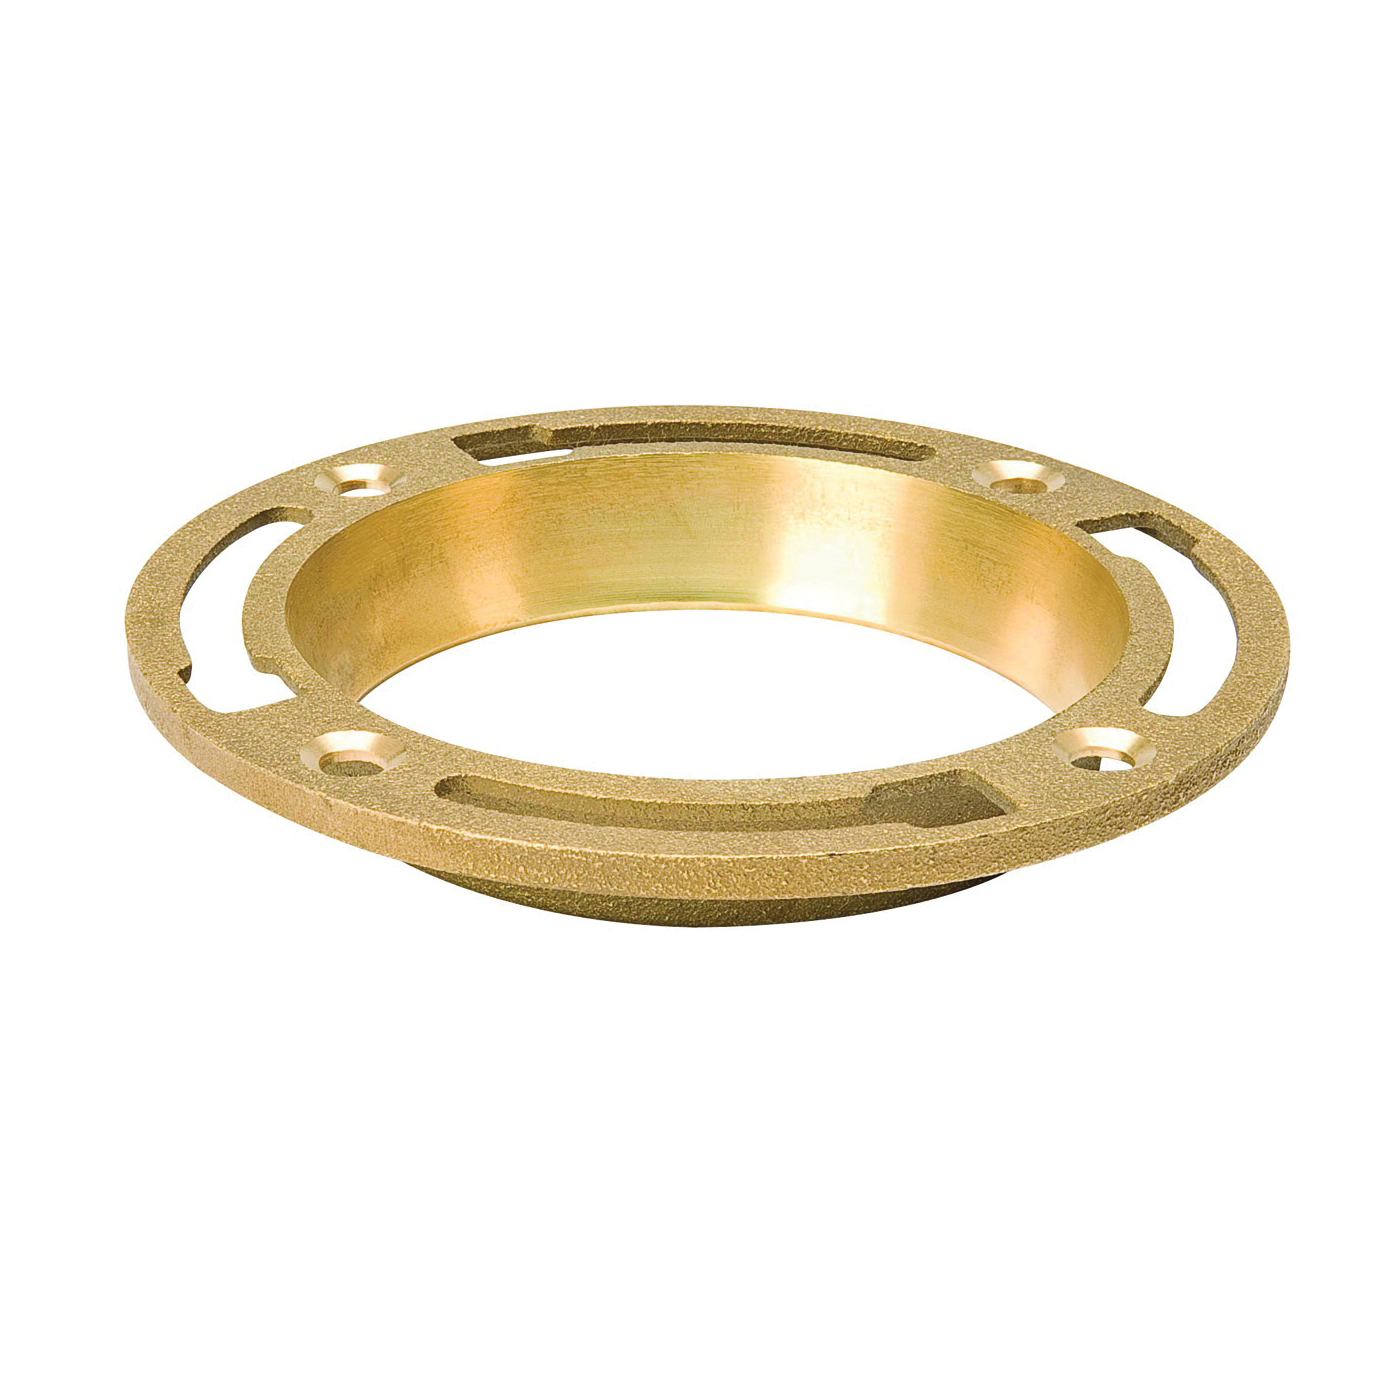 Picture of B & K 152-001 Closet Floor Flange, Brass, For: Both 3 in and 4 in SCH 40